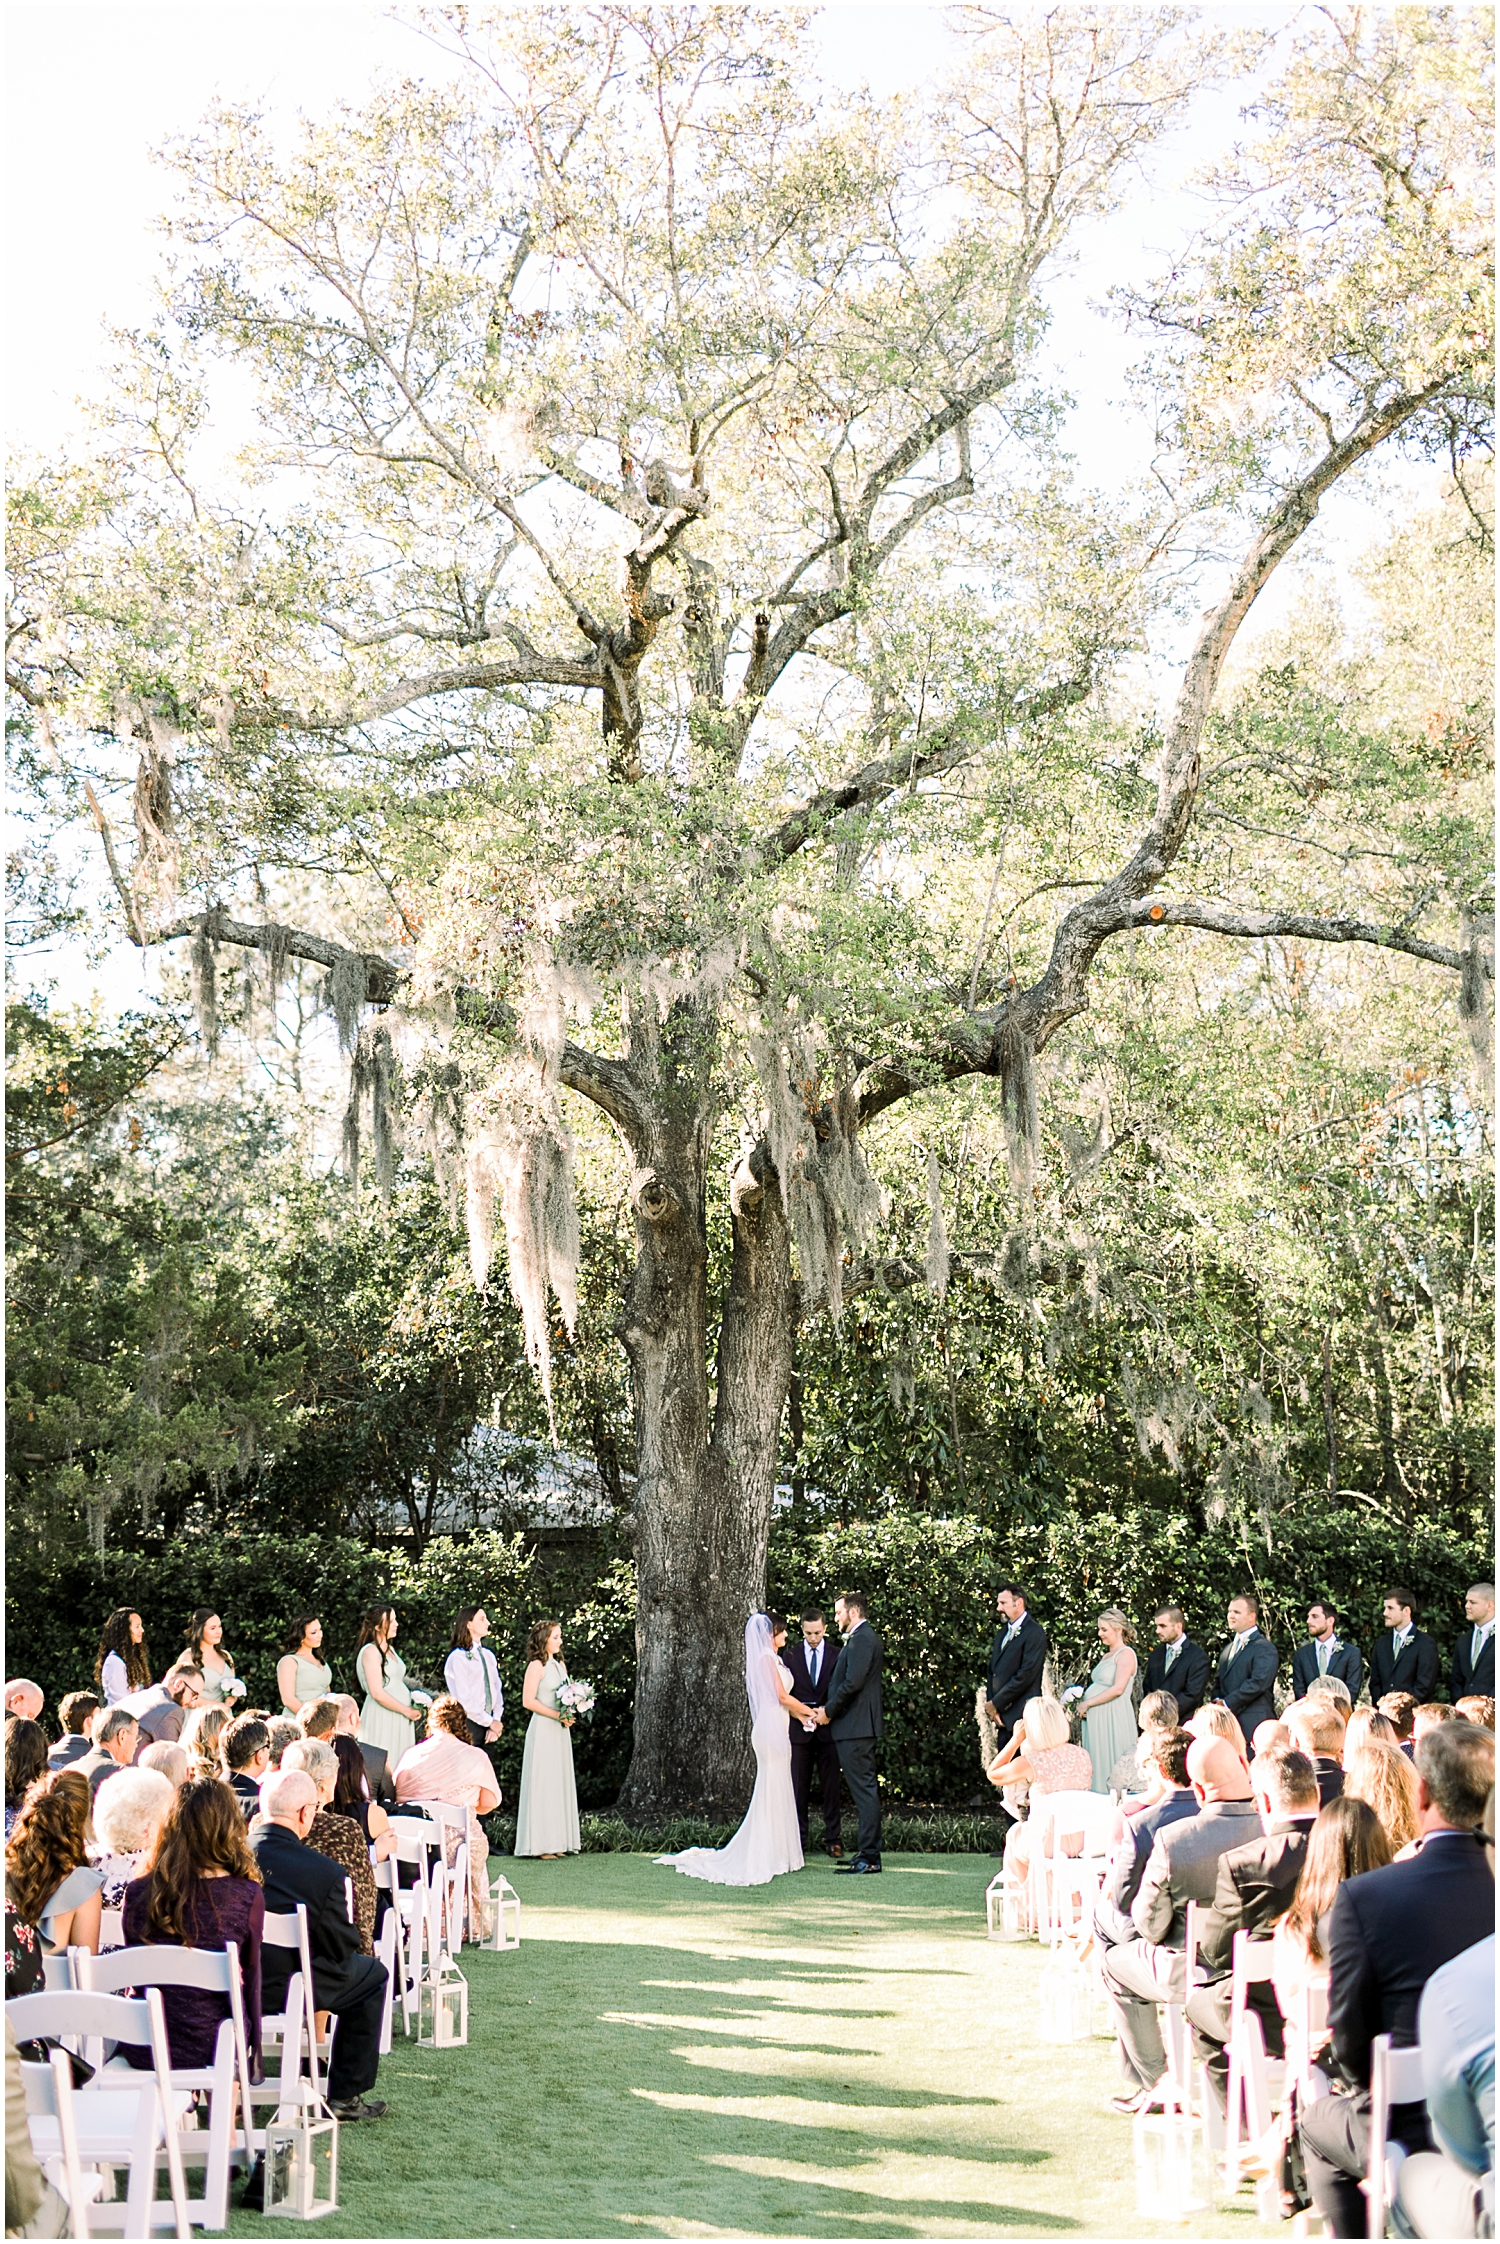 Wrightsville Manor Wedding Venue, Downtown Wilmington NC Wedding_Erin L. Taylor Photography_0008.jpg